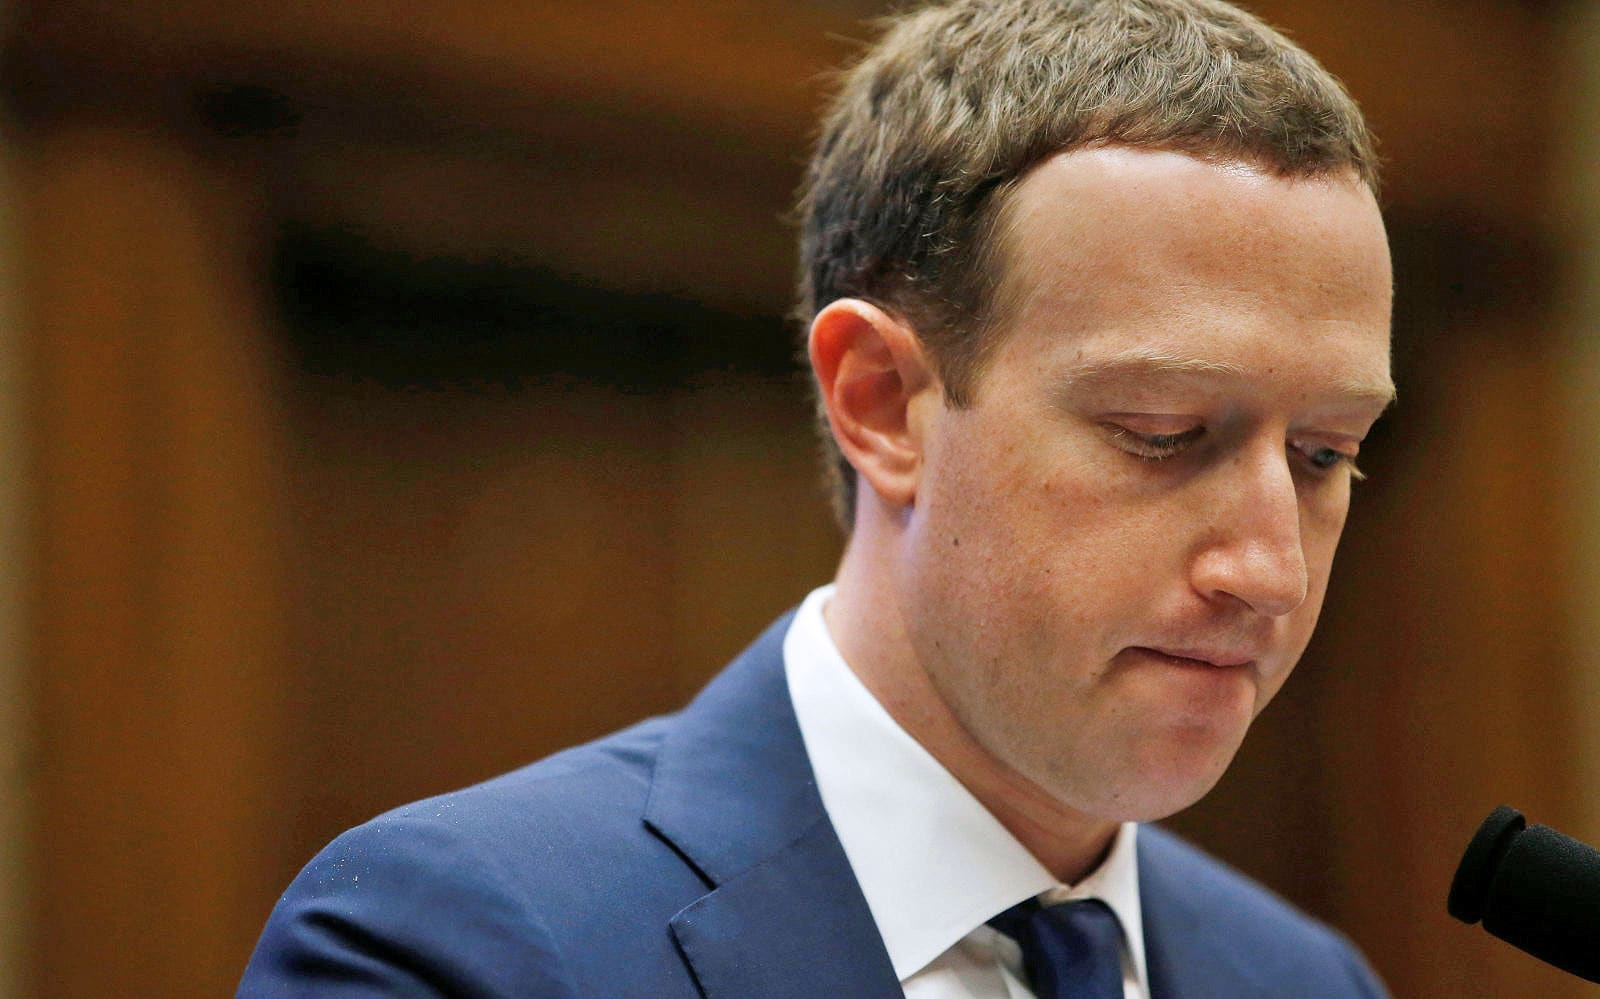 FTC's Facebook investigation could focus on Zuckerberg